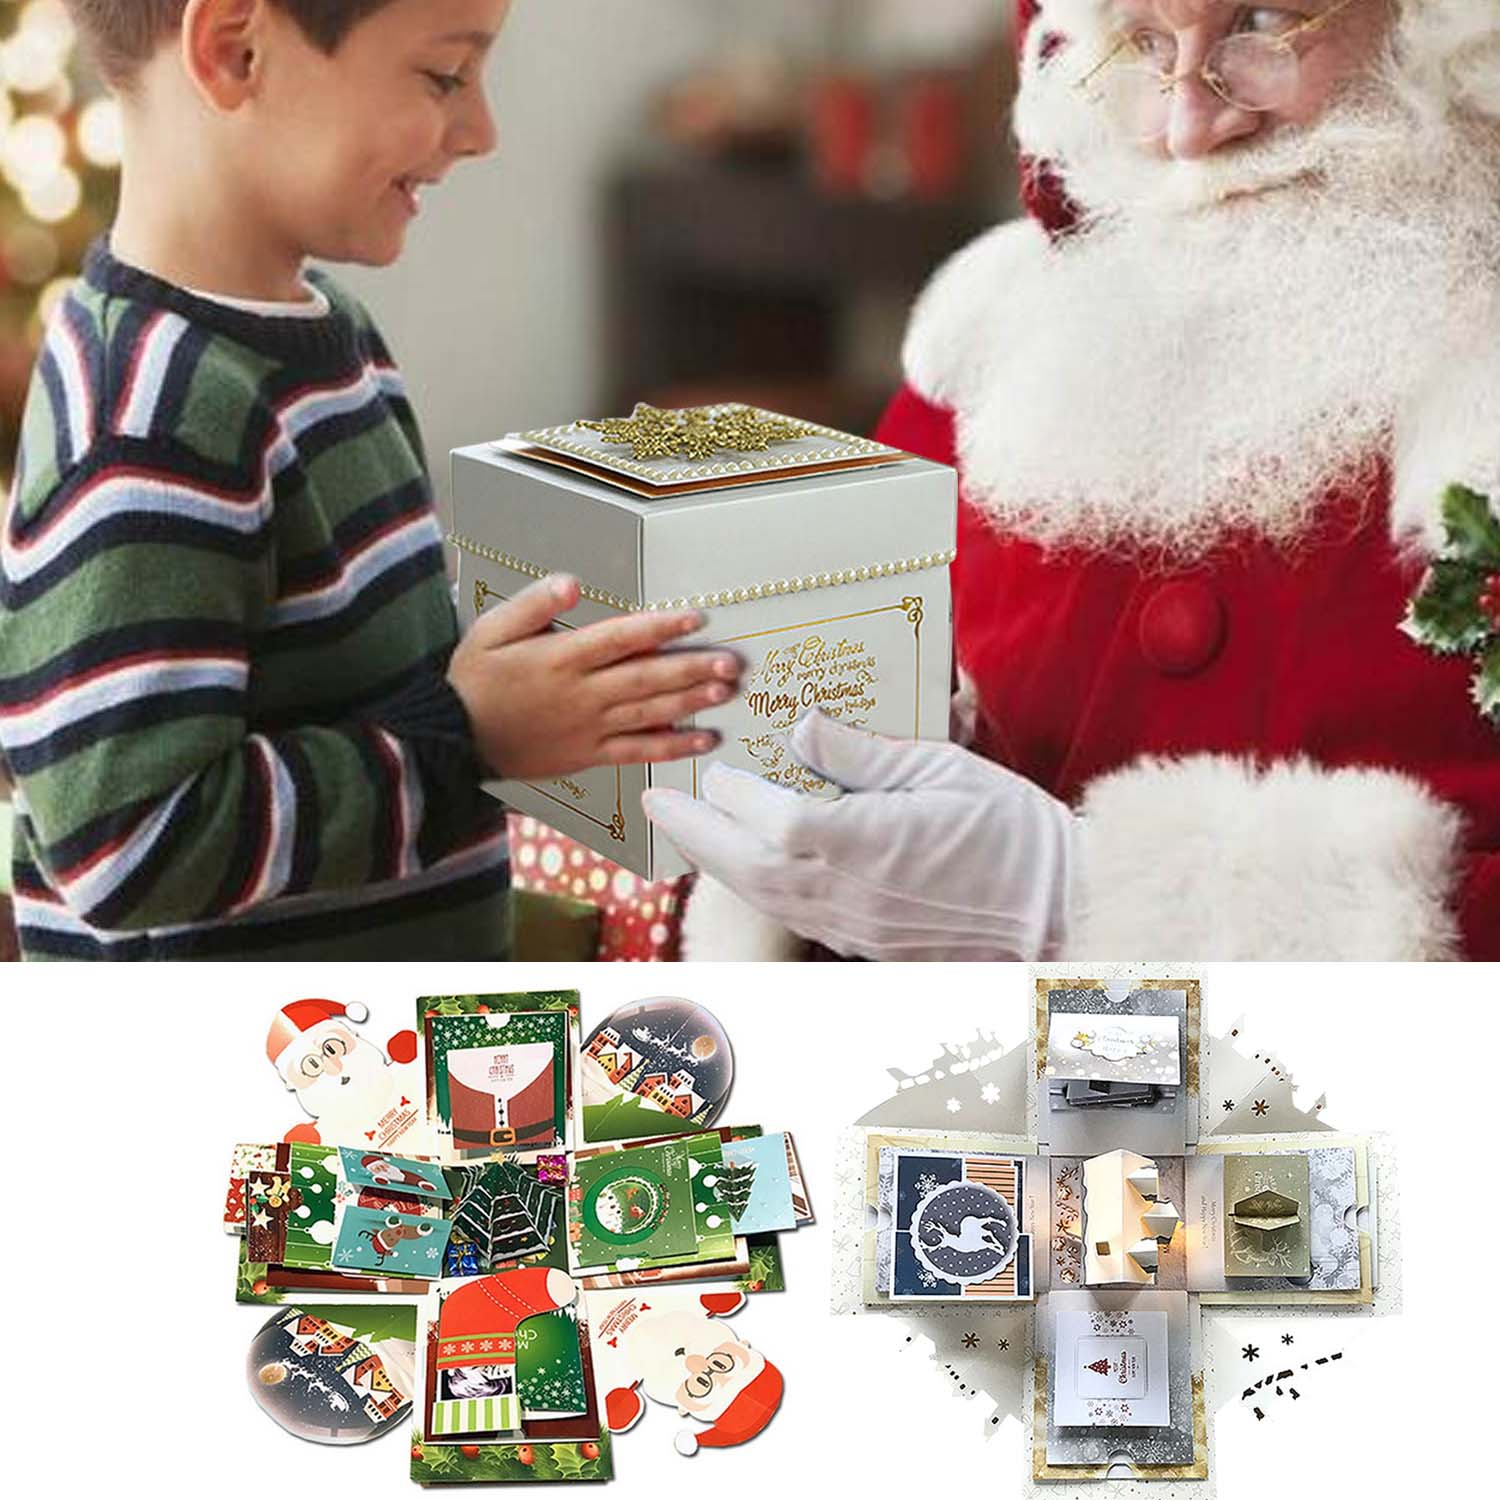 Behogar Christmas Theme Surprise Explosion Box DIY Scrapbook Photo Album Box with Accessories for Lover Family Friend Xmas GiftsBehogar Christmas Theme Surprise Explosion Box DIY Scrapbook Photo Album Box with Accessories for Lover Family Friend Xmas Gifts